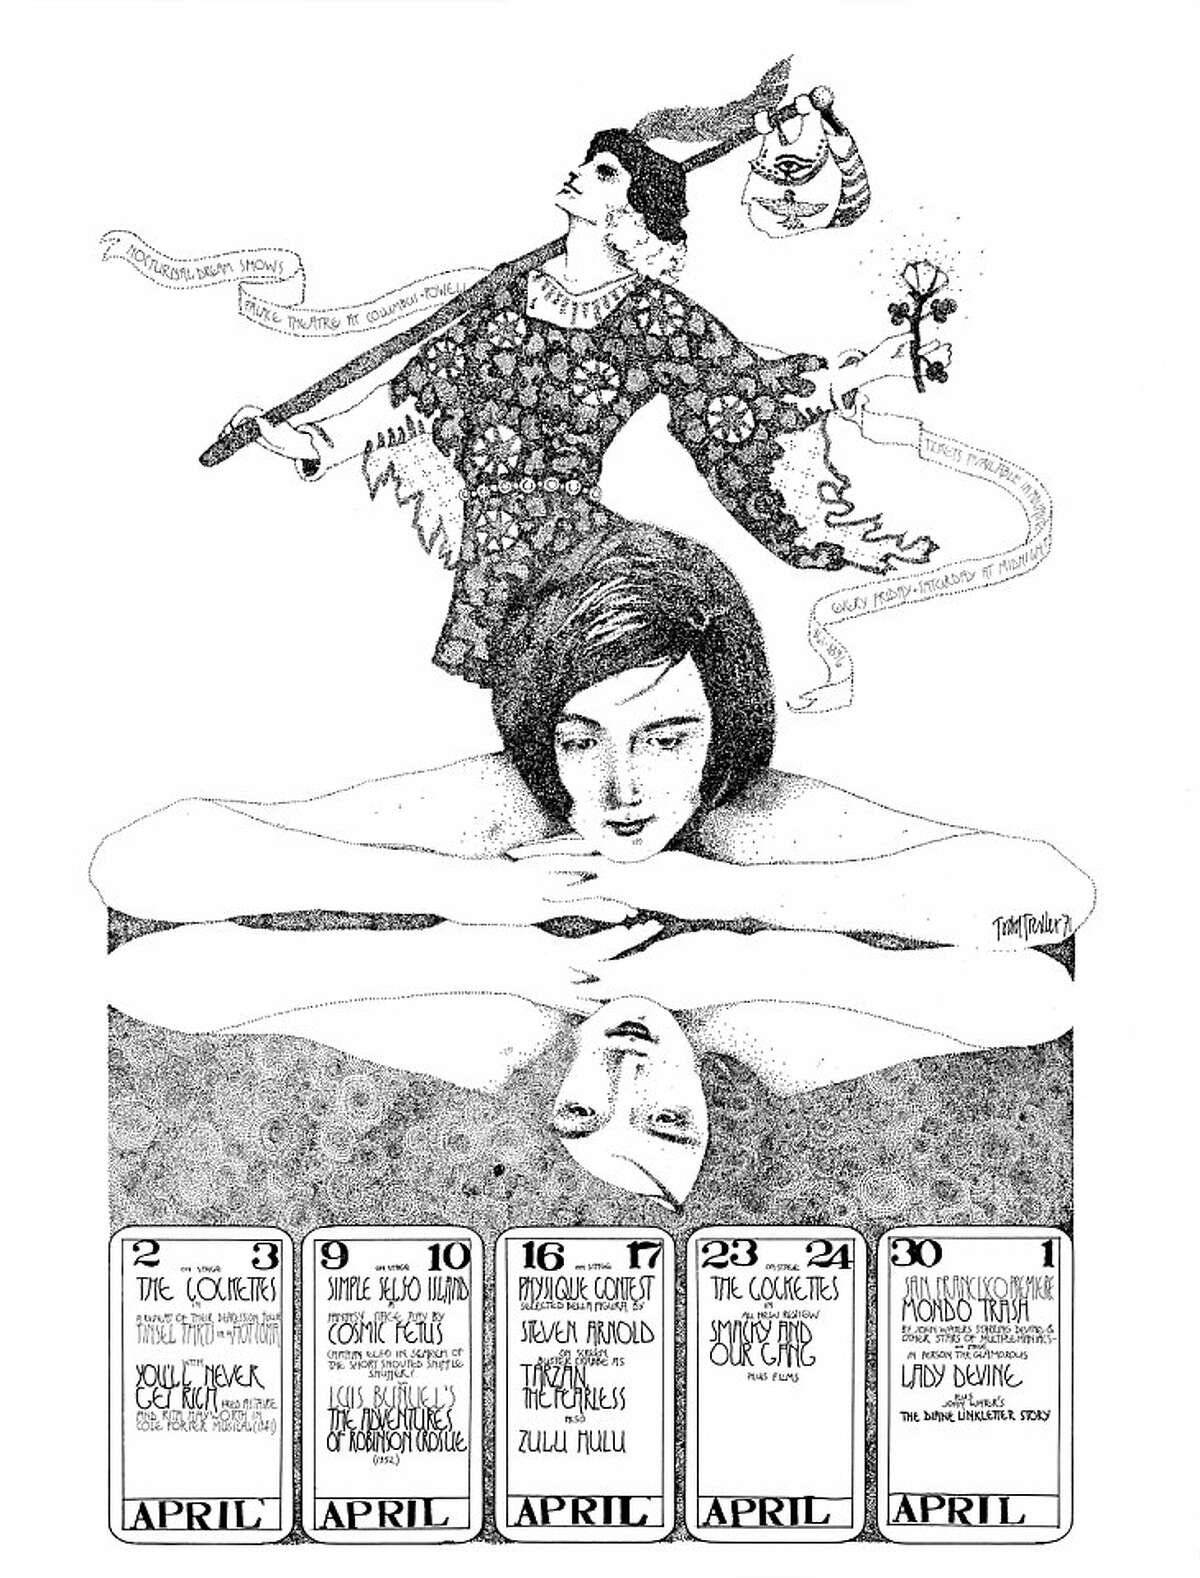 Nocturnal dream show poster and caption: Nocturnal Dream Shows Lady Divine in person The Cockettes on stage April 1971